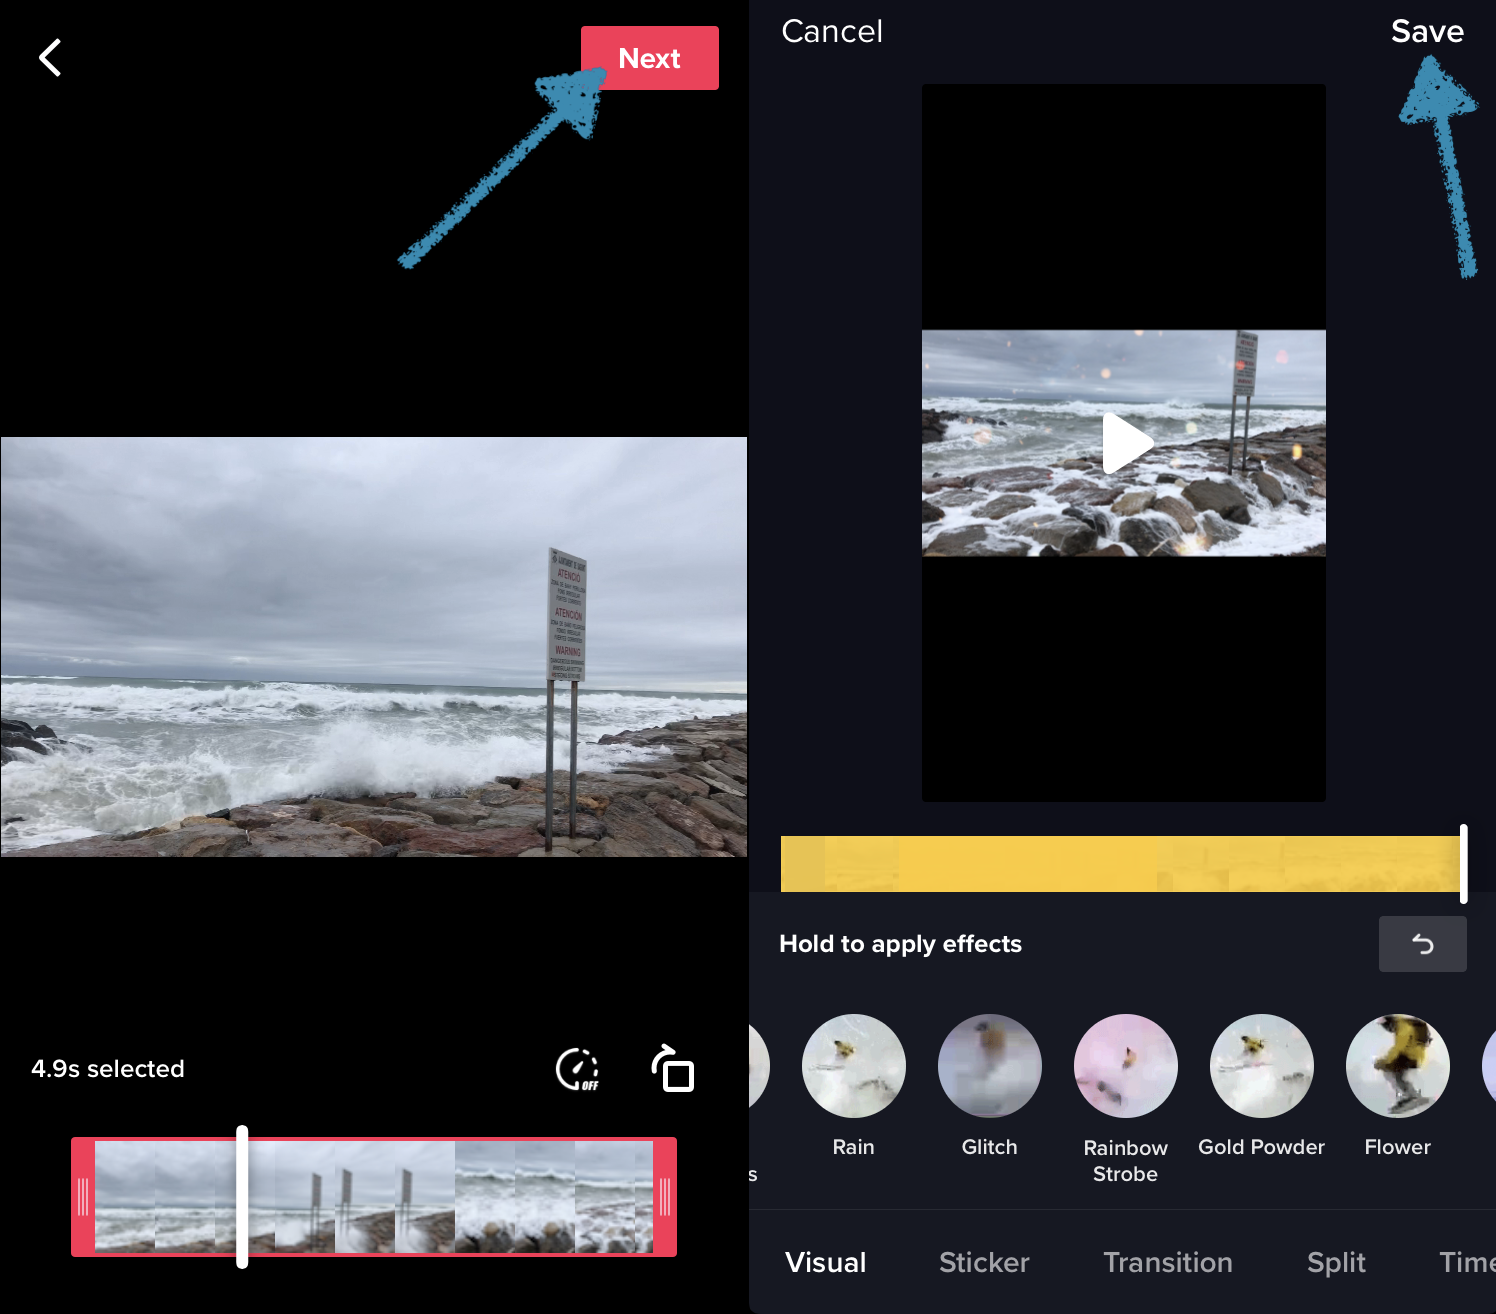 Add filters and effects to the TikTok video